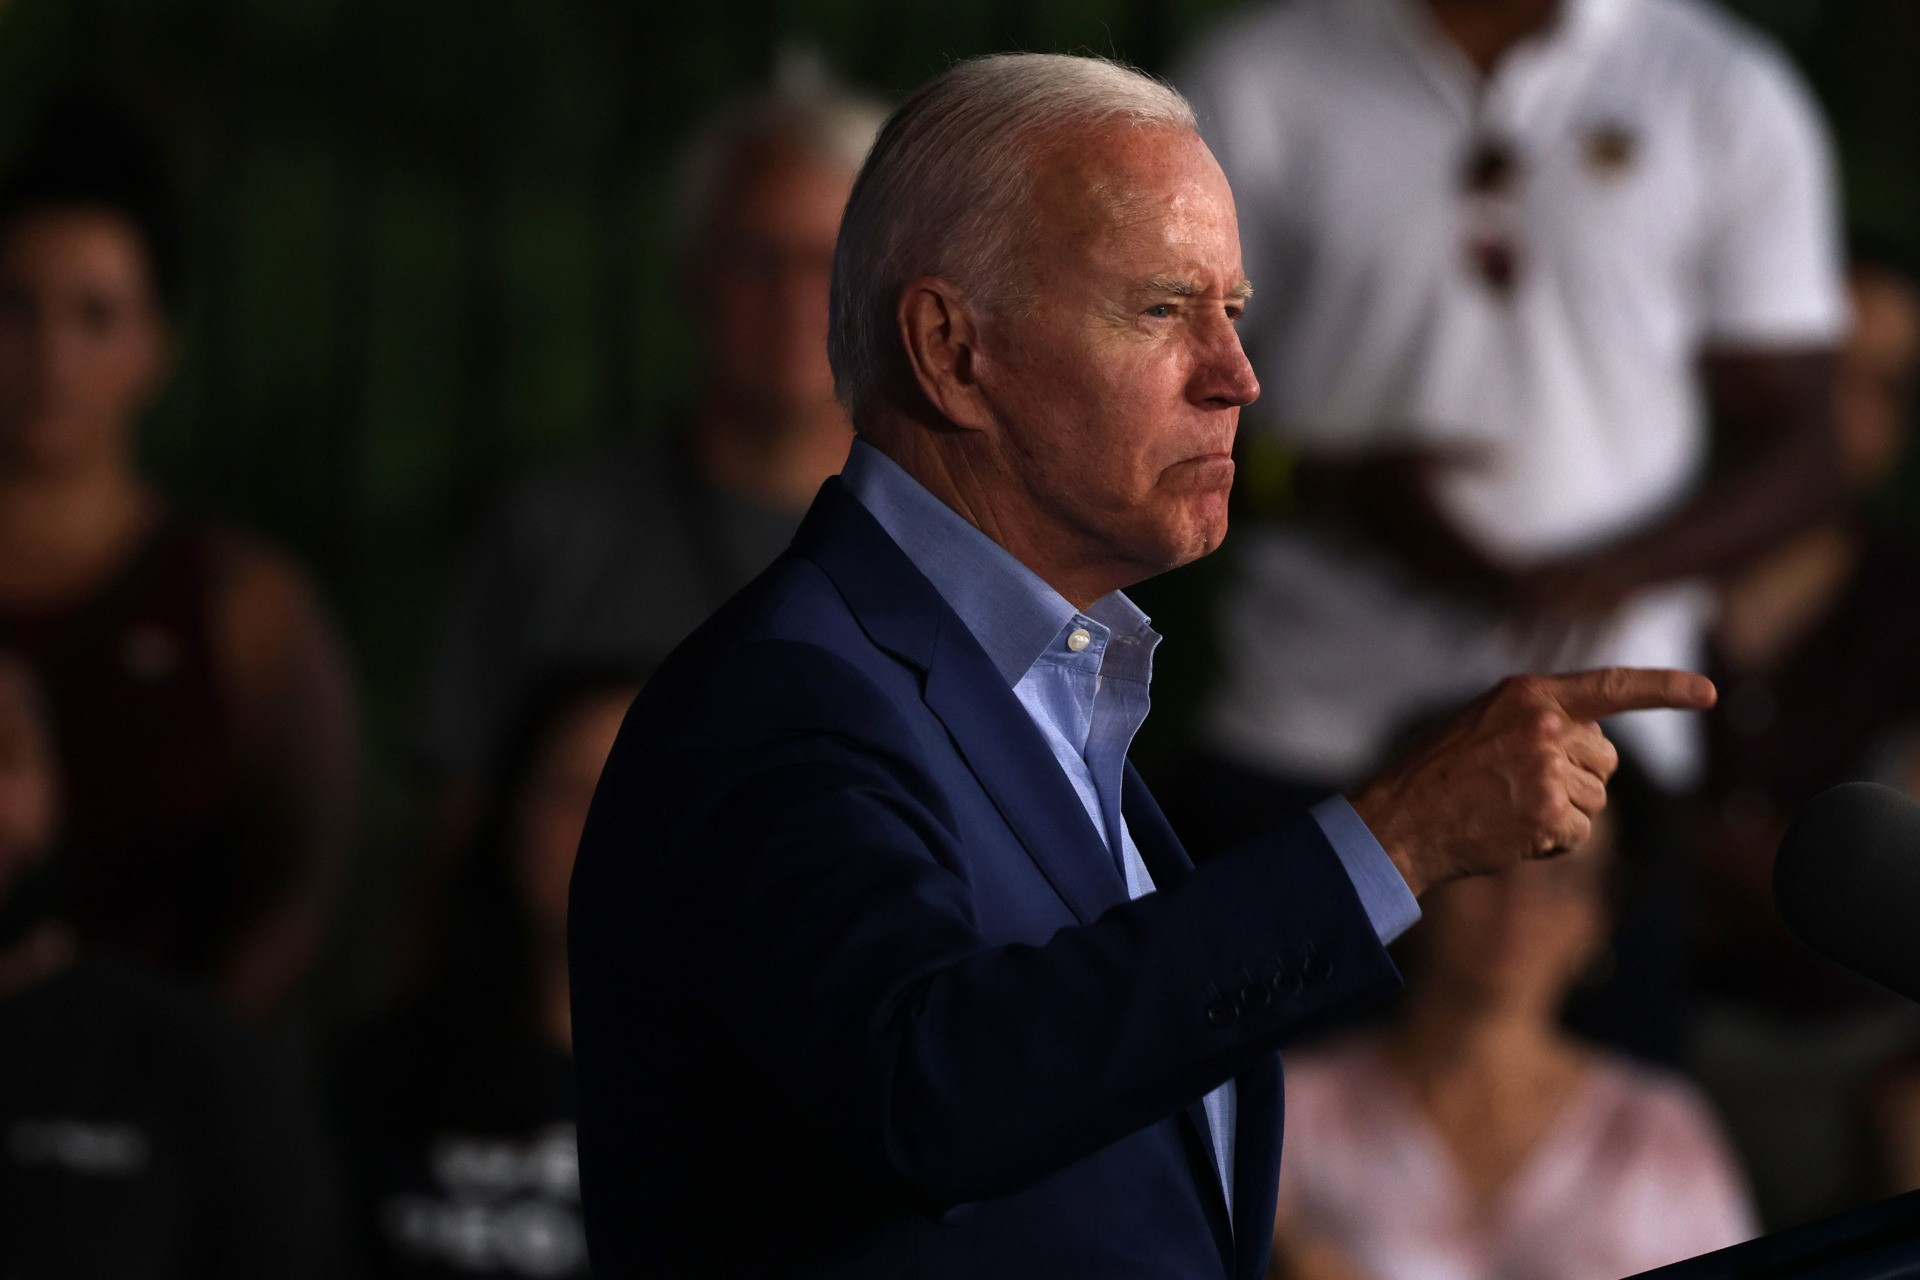 ARLINGTON, VIRGINIA - JULY 23: U.S. President Joe Biden gestures as he speaks at a campaign event for Virginia gubernatorial candidate Terry McAuliffe (D-VA) at the Lubber Run Community Center on July 22, 2021 in Arlington, Virginia. President Biden joined McCauliffe to help campaign, marking the President's return to the campaign trail since he entered the White House. (Photo by Anna Moneymaker/Getty Images)